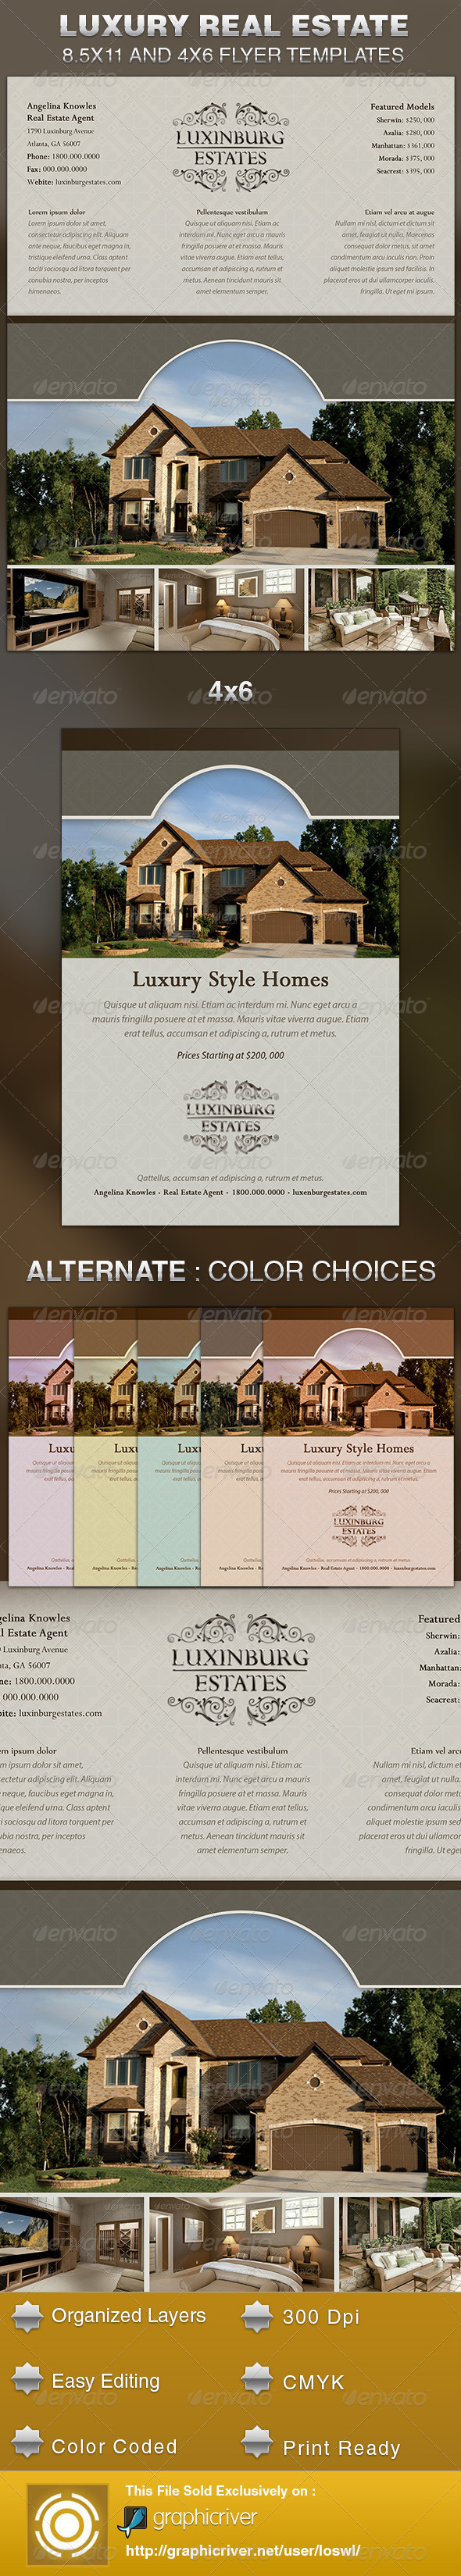 GraphicRiver Luxury Real Estate Flyer Template 5477932